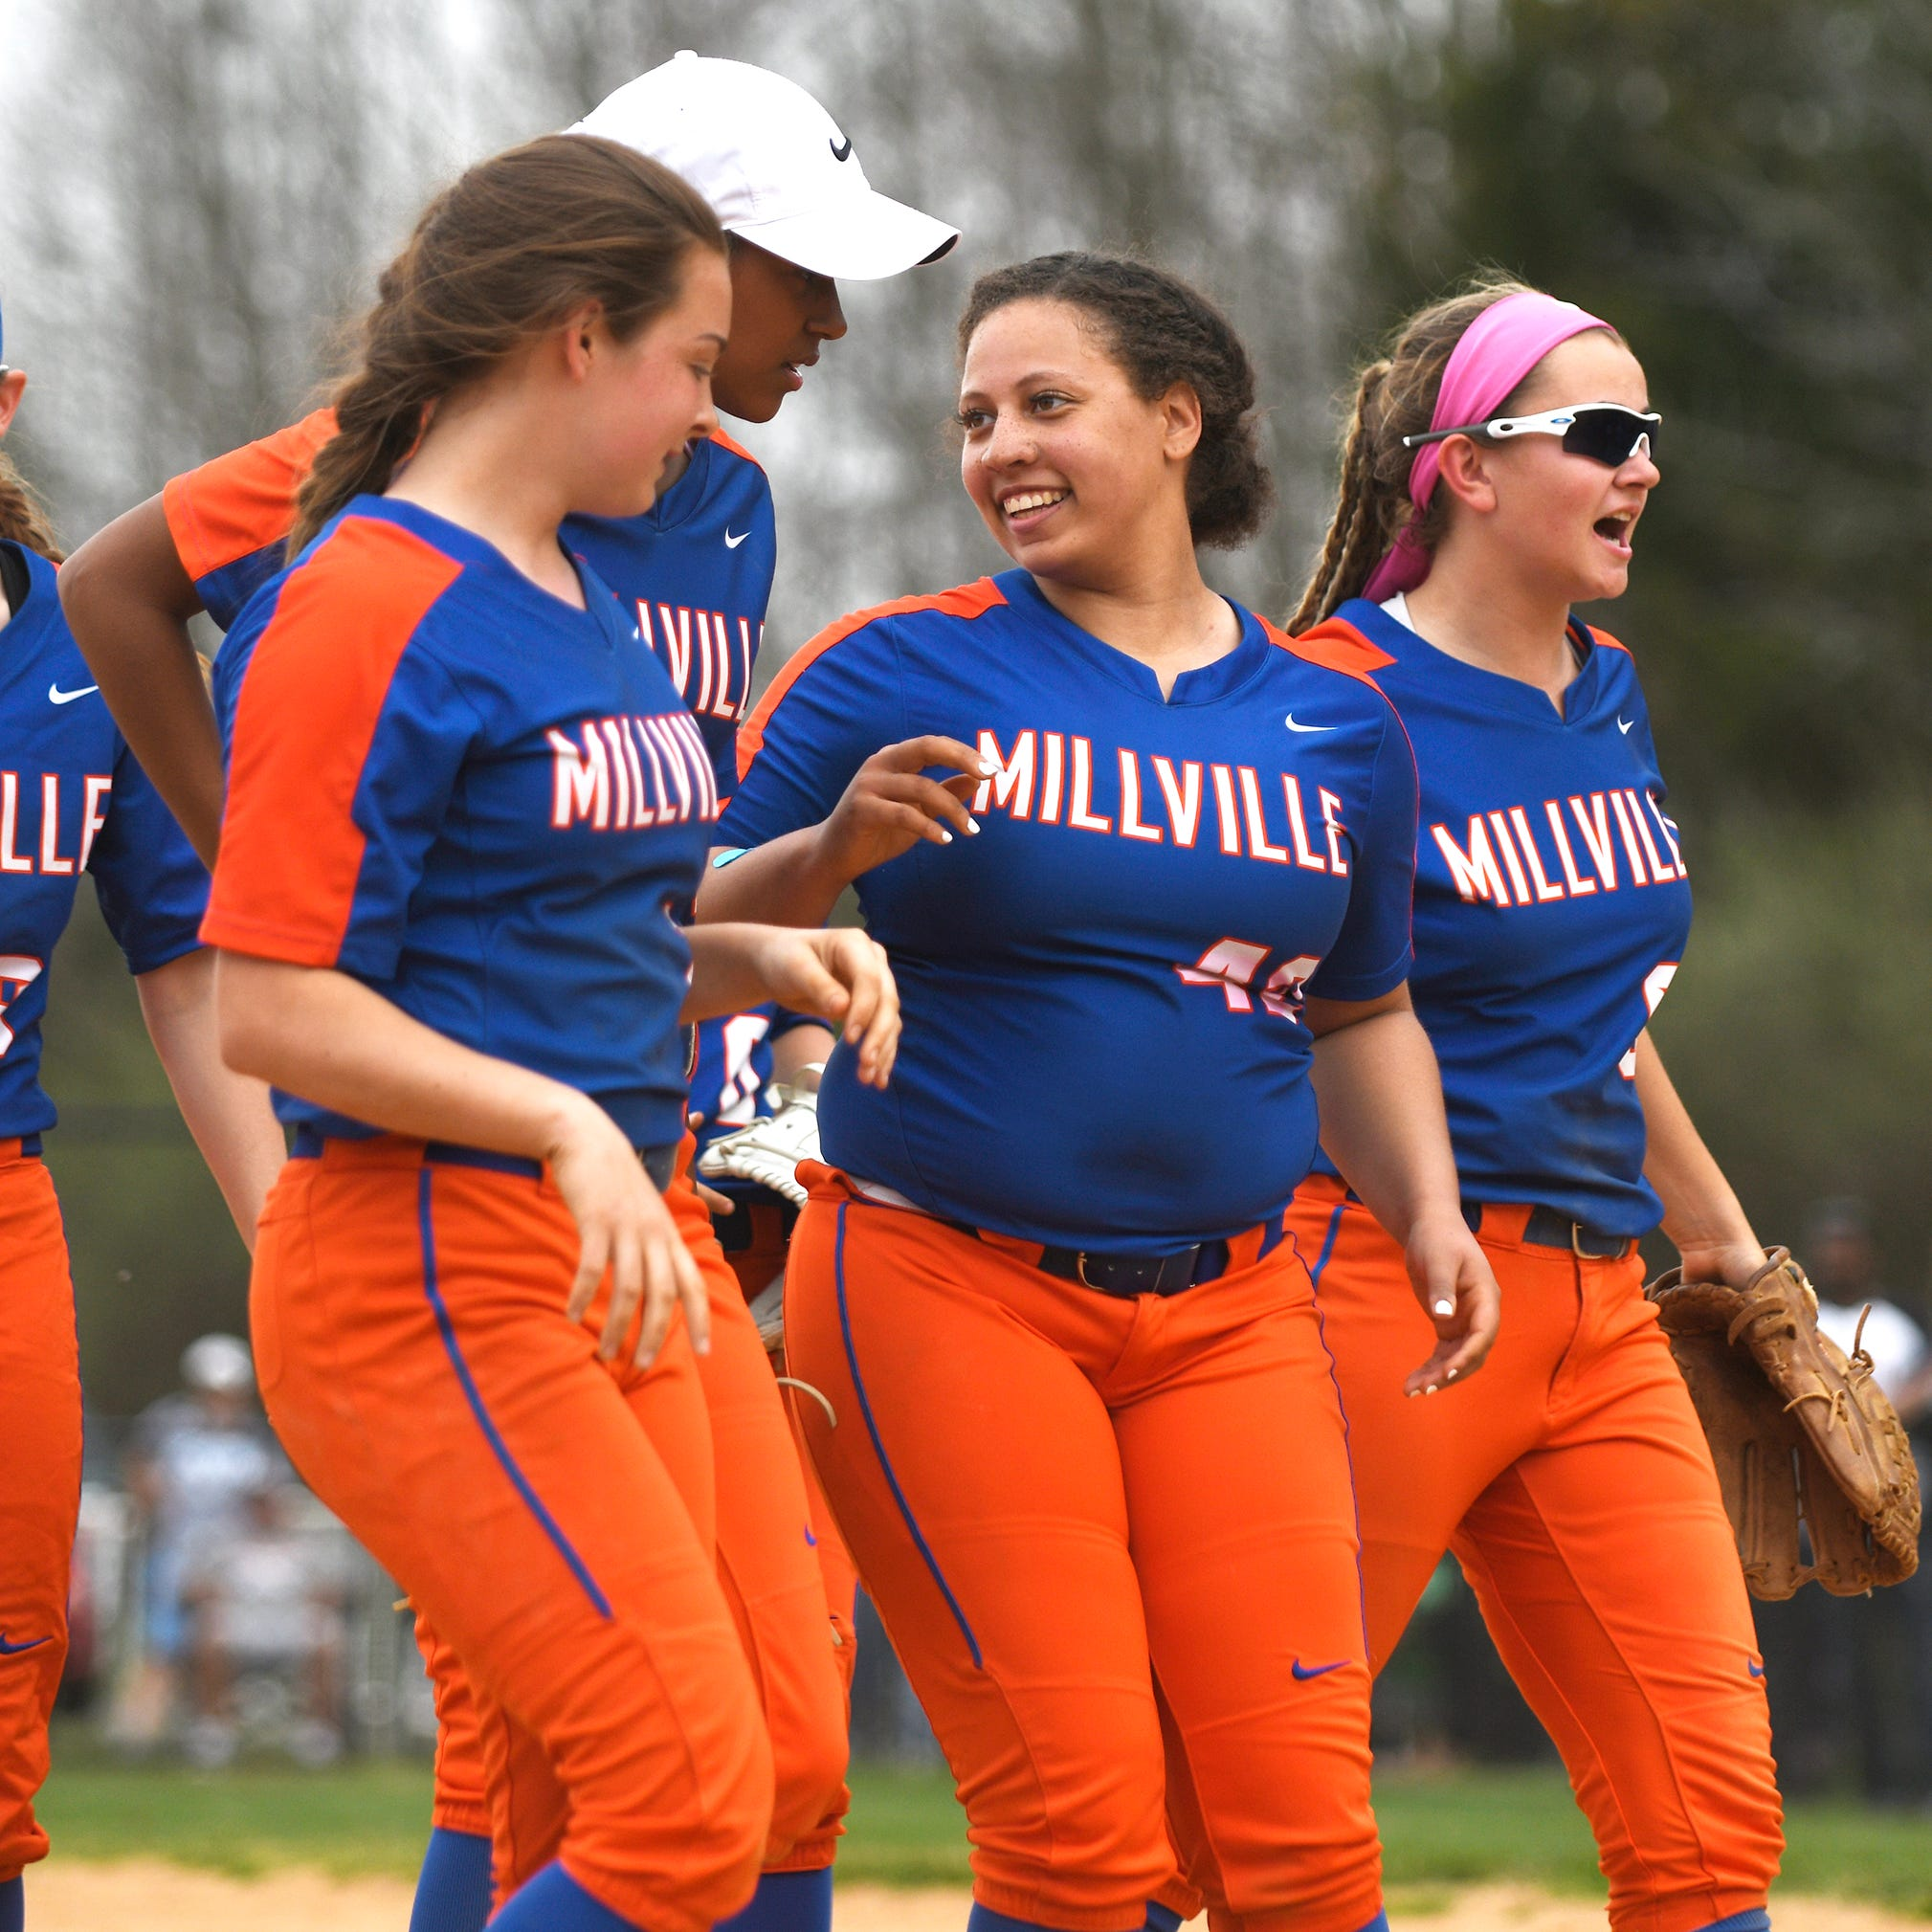 High school softball: Markee, Millville shoot down win over Vineland